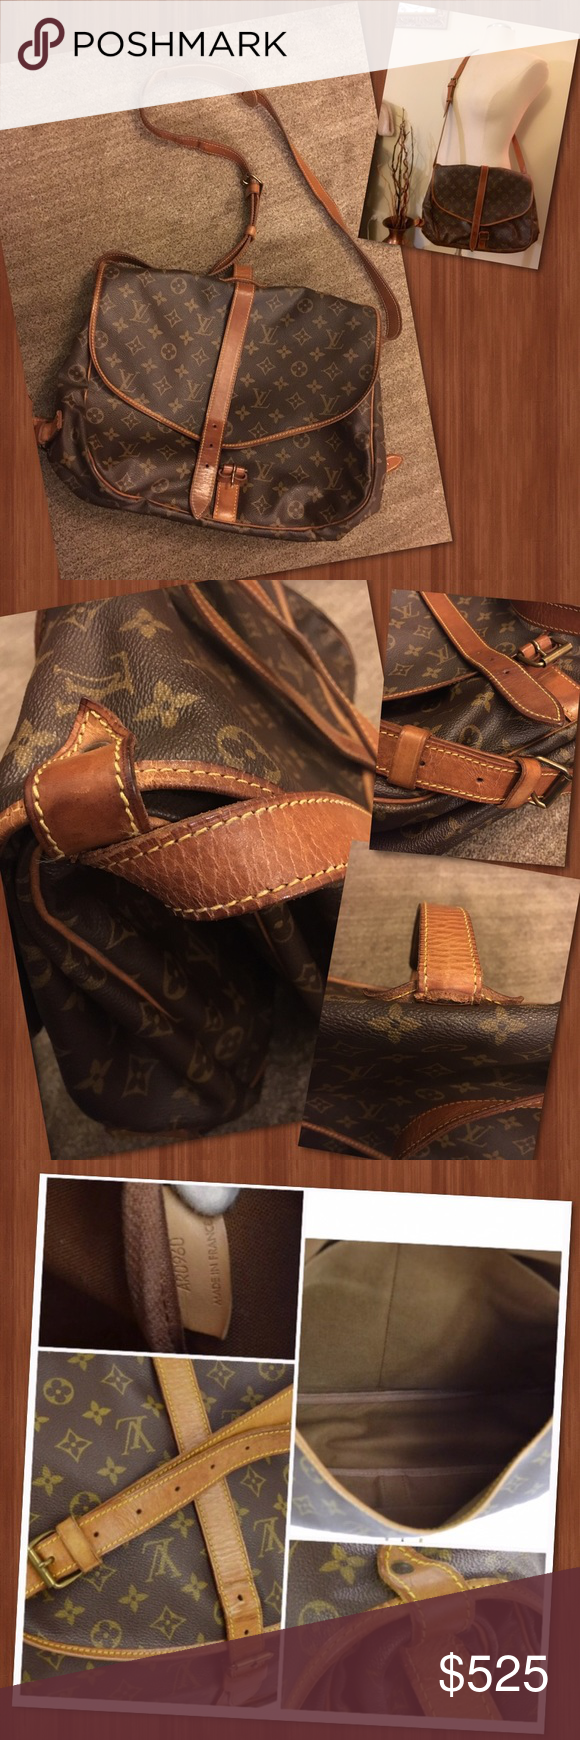 Authentic Louis Vuitton Saumer Crossbody In great condition. After having it cleaned and conditioned decided it's just to big for me.  Very spacious. Clean inside and out. Leather straps and trim aging. Much better since conditioning.(see pics) strap measurements- 15.7-20.9 adjustable. Date Code- AR0960 Louis Vuitton Bags Crossbody Bags